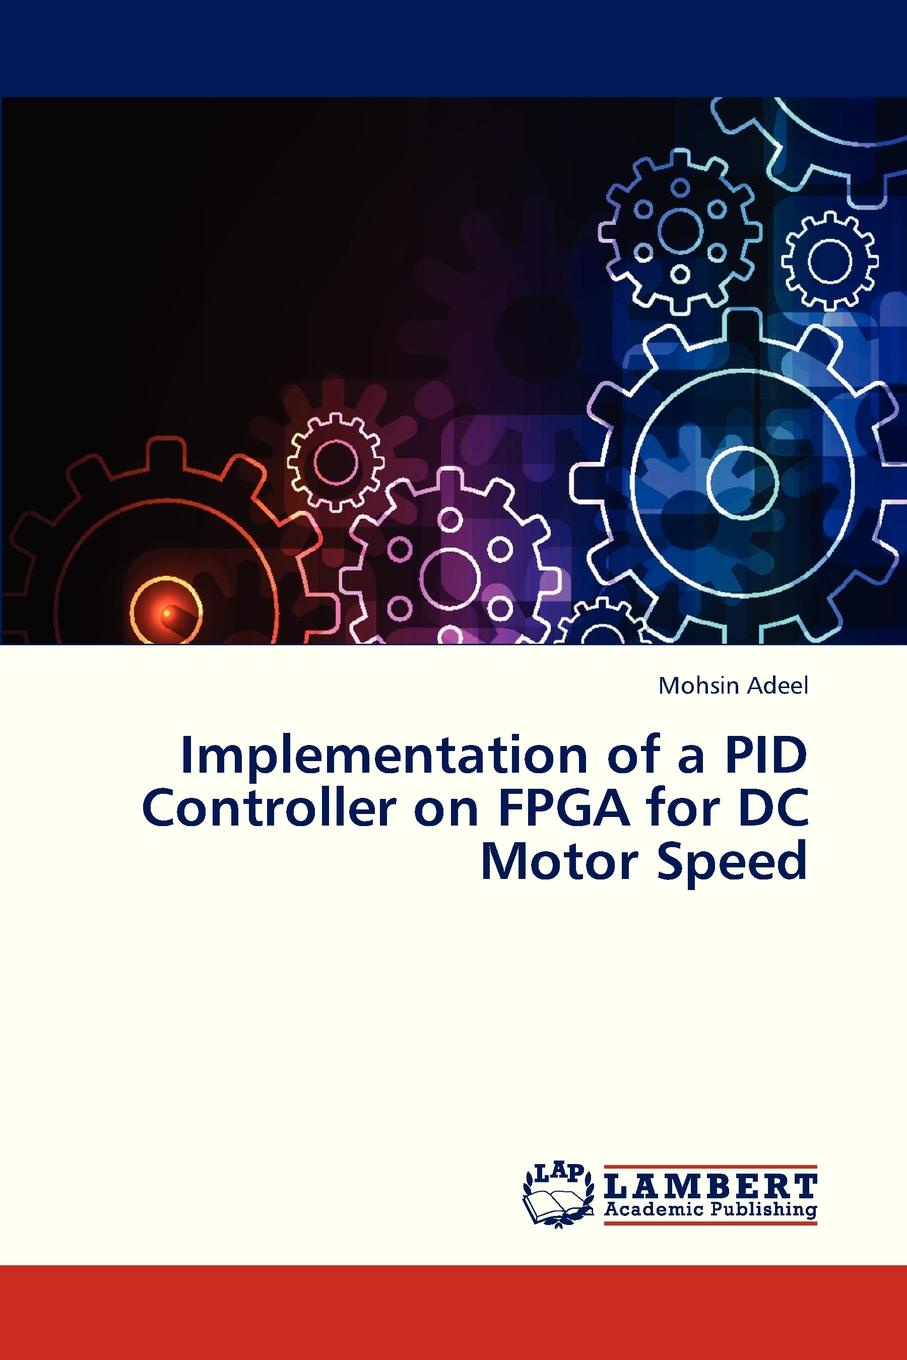 Adeel Mohsin Implementation of a Pid Controller on FPGA for DC Motor Speed 4pcs gartt 12a brushless blheli speed esc controller for fpv qav250 200 quadcopter